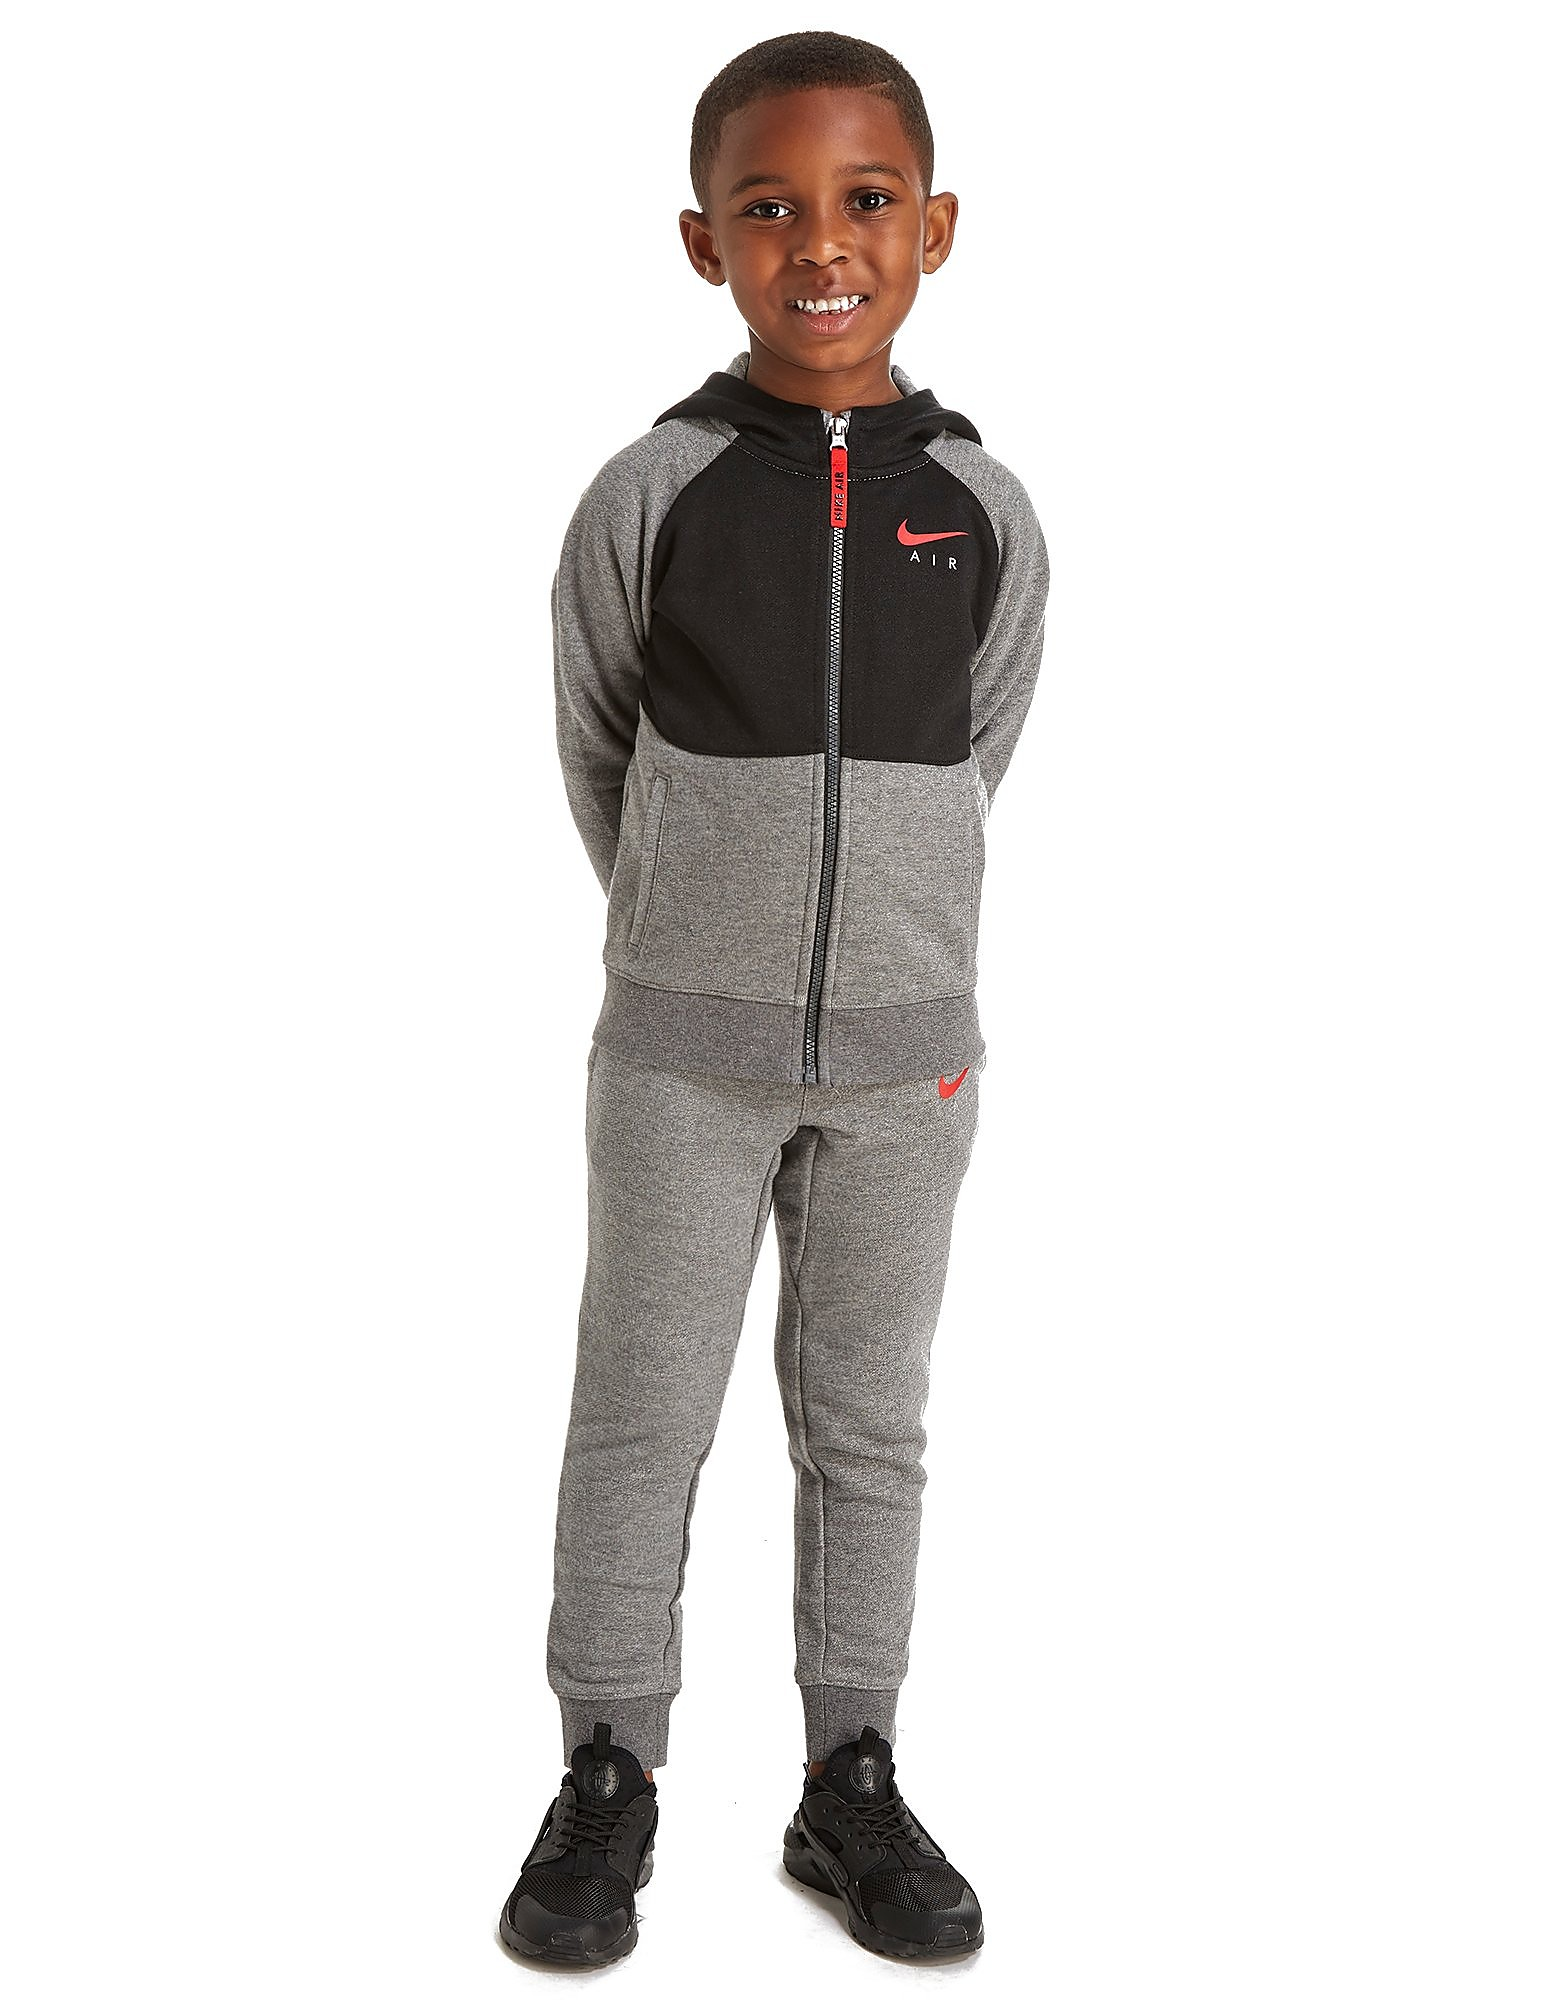 Nike Air Full Zip Tracksuit Children